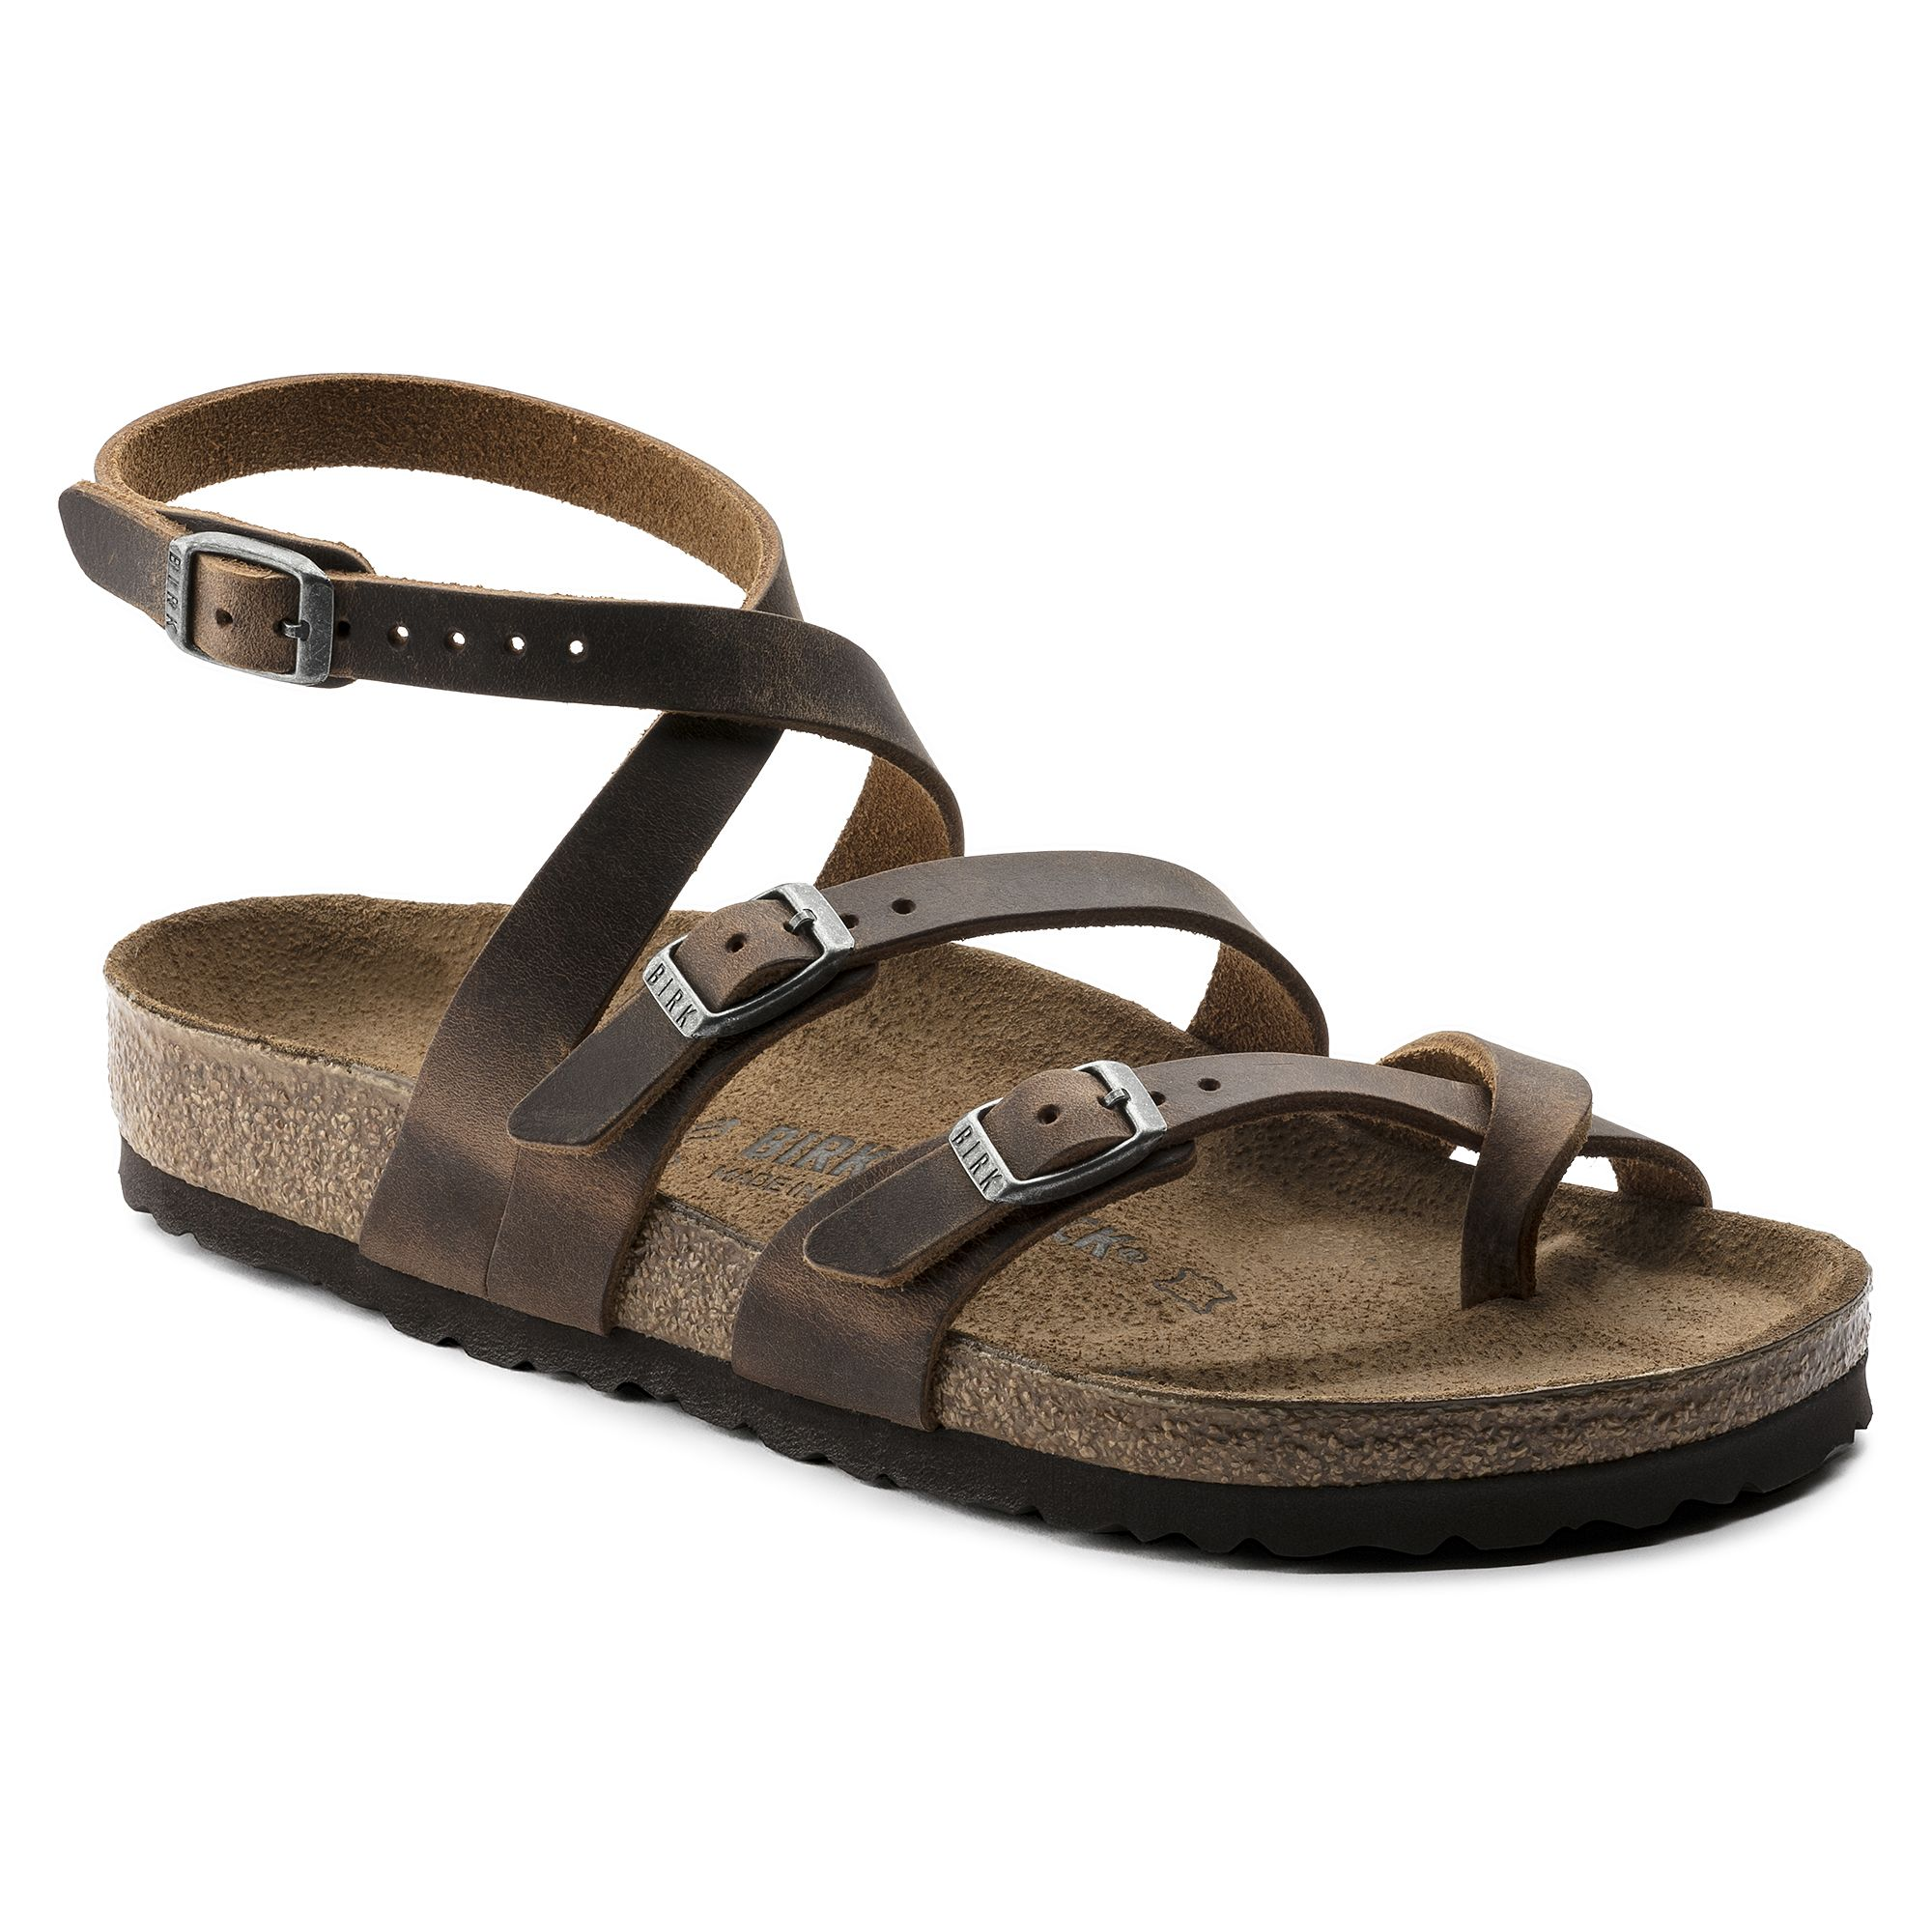 822c57fb606 BIRKENSTOCK Seres Natural Leather Camberra Old Tobacco in all sizes ✓ Buy  directly from the manufacturer online ✓ All fashion trends from Birkenstock